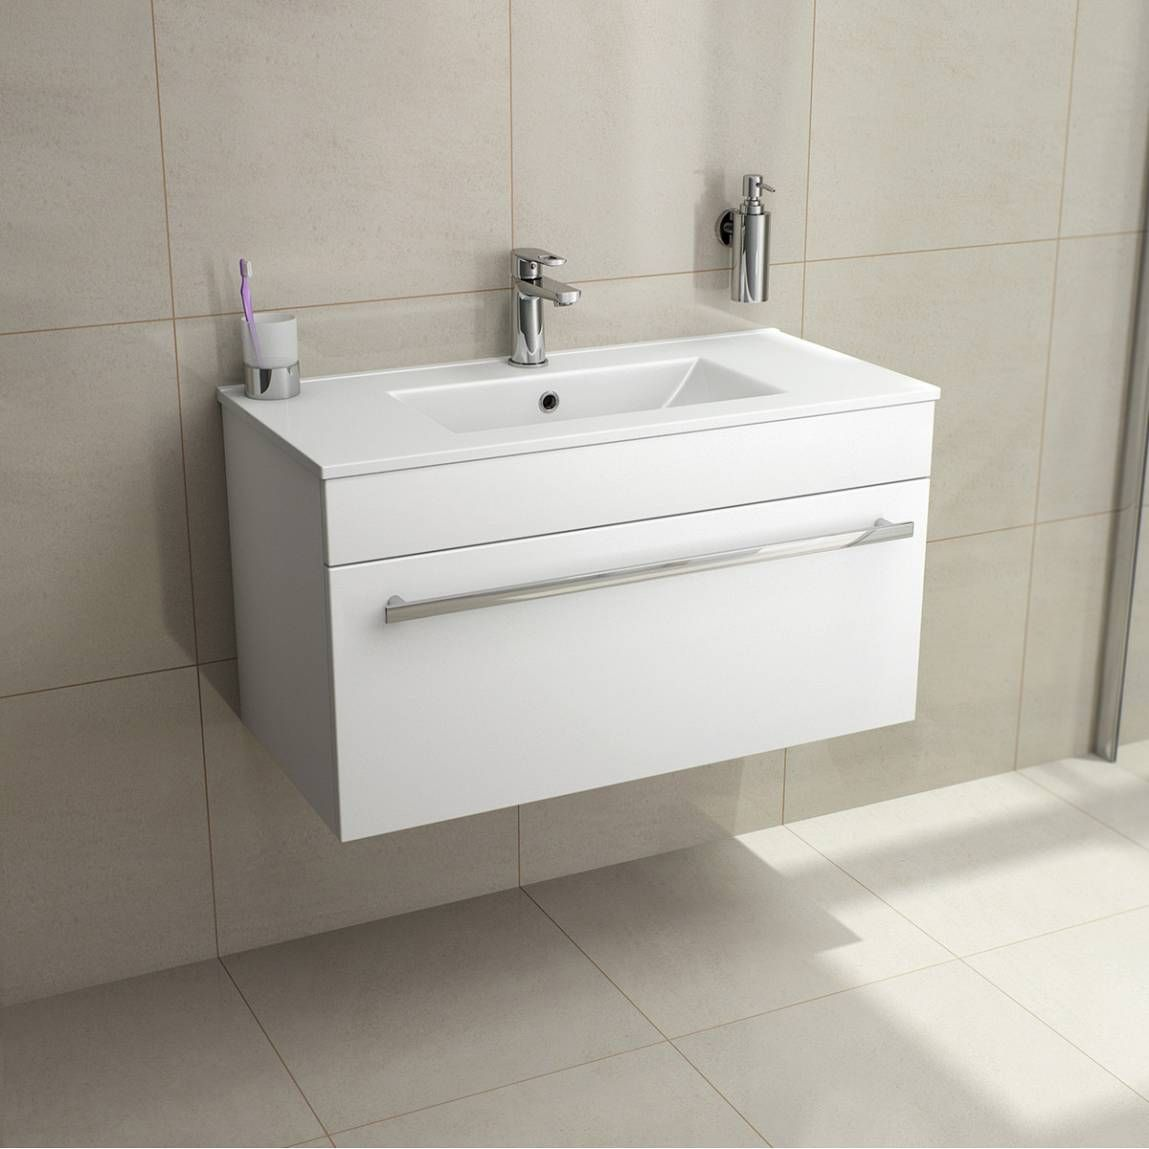 Odessa White Wall Hung 800 Drawer Unit Inset Basin Bathroom Ideas Pinterest Bathroom